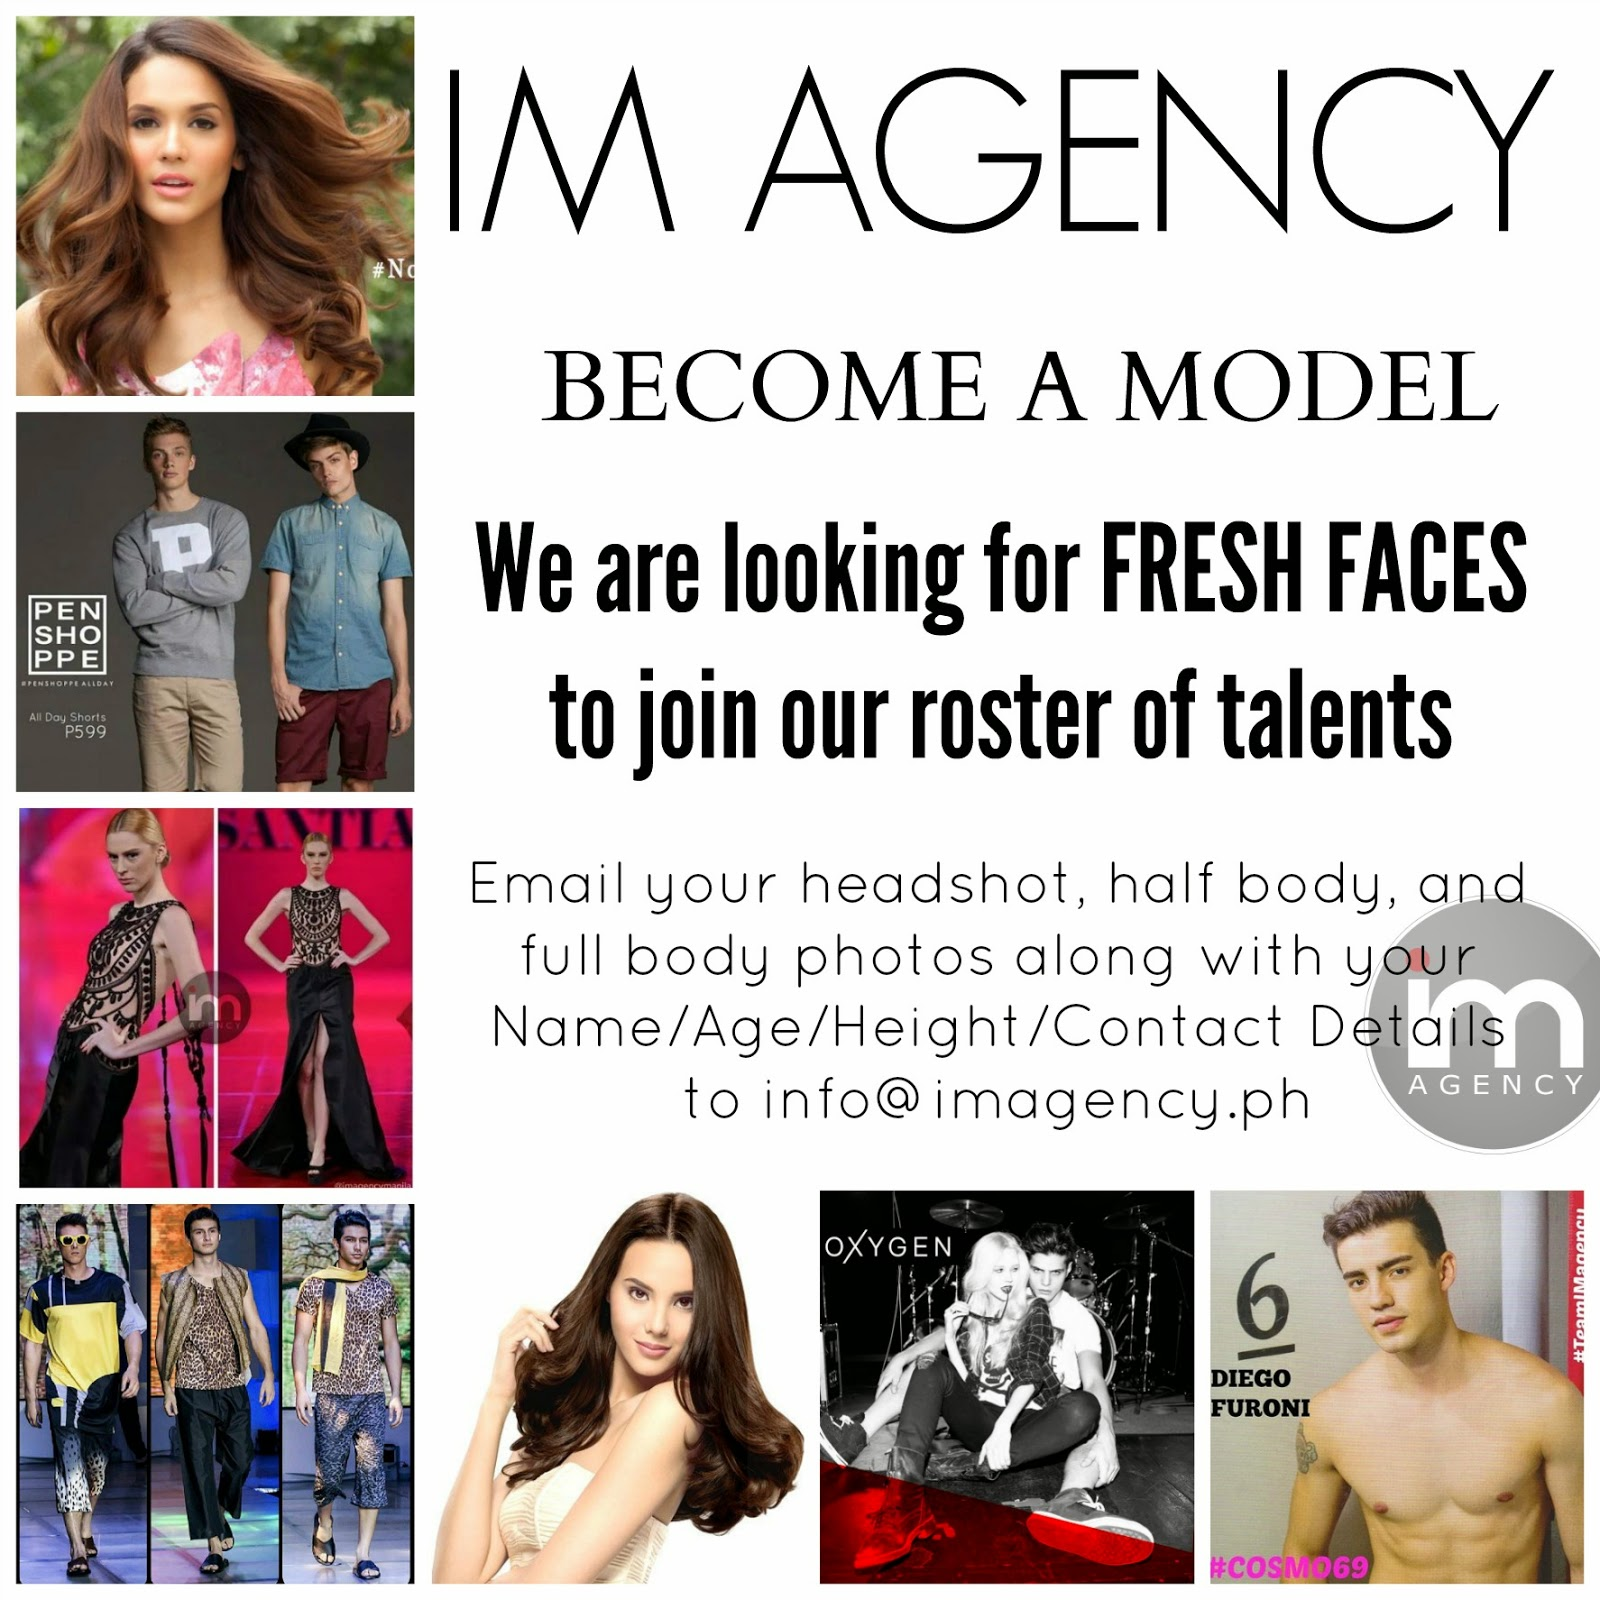 IM Agency Become A Model